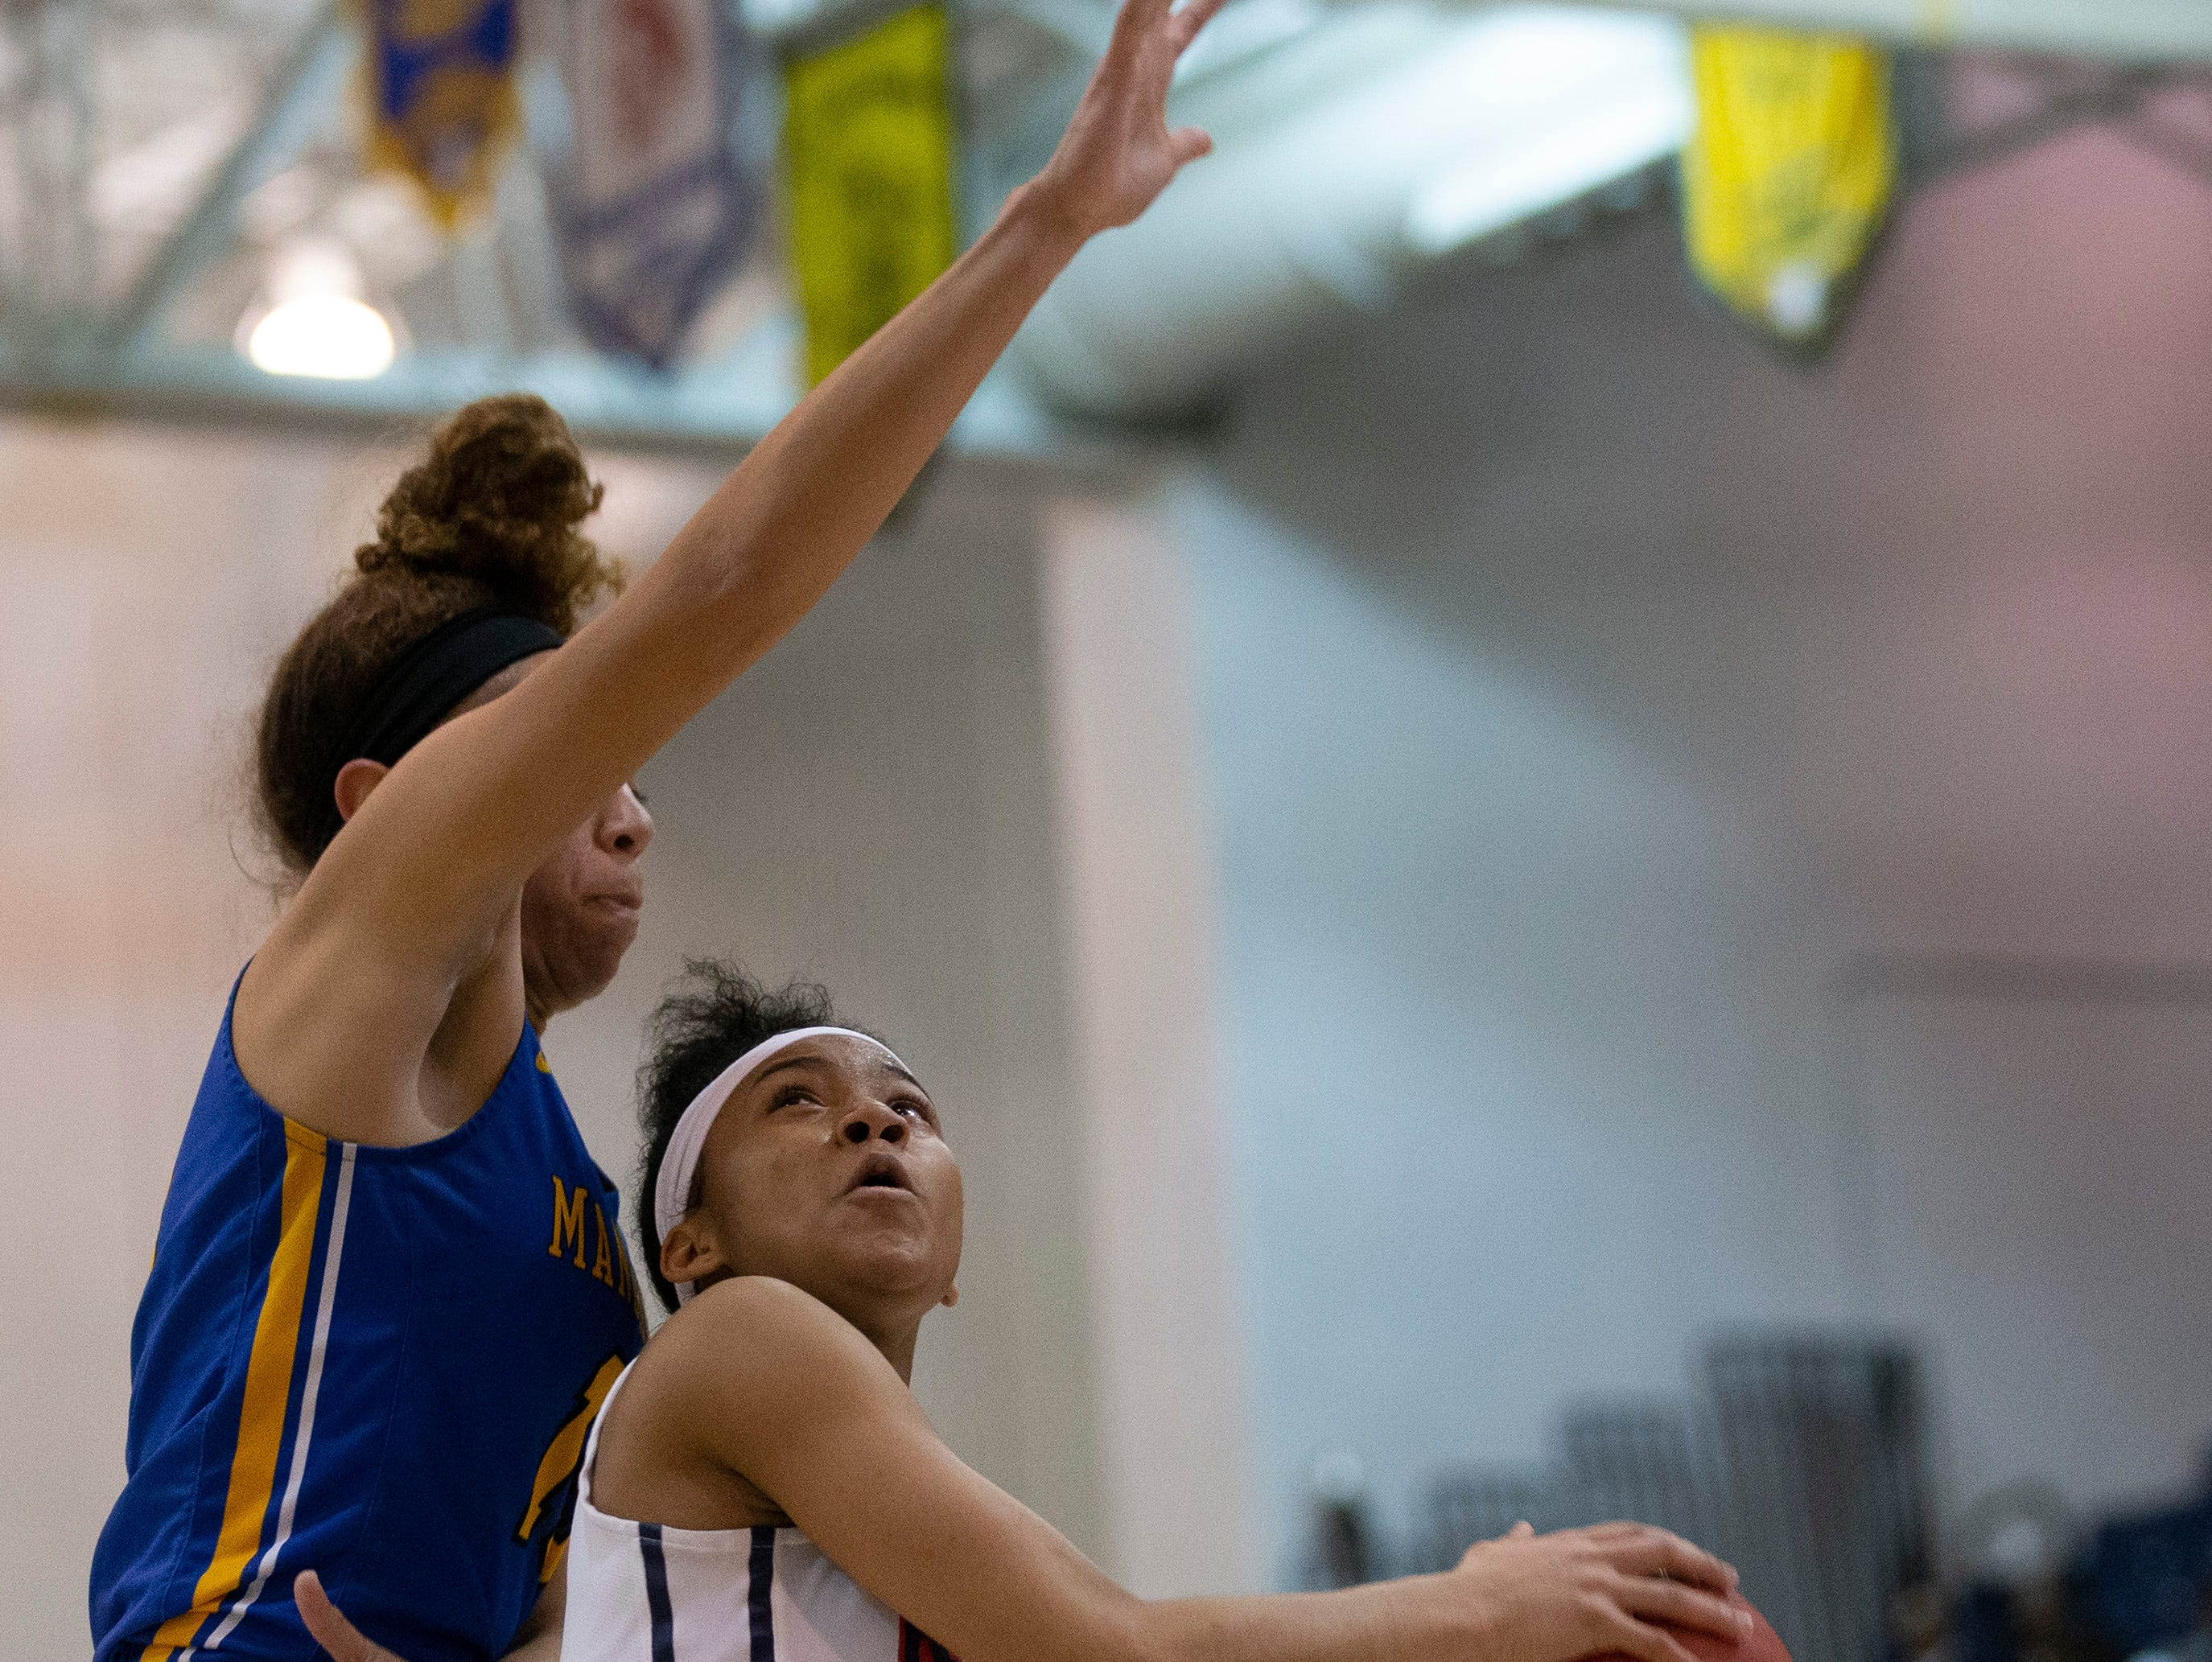 Saddle River Day's Saniah Caldwell tries for a shot as she's covered by Dakota Adams. Manchester Girls Basketball vs Saddle River Day in NJSIAA Tournament of Champions Semifinal in Toms River on March 14, 2019.